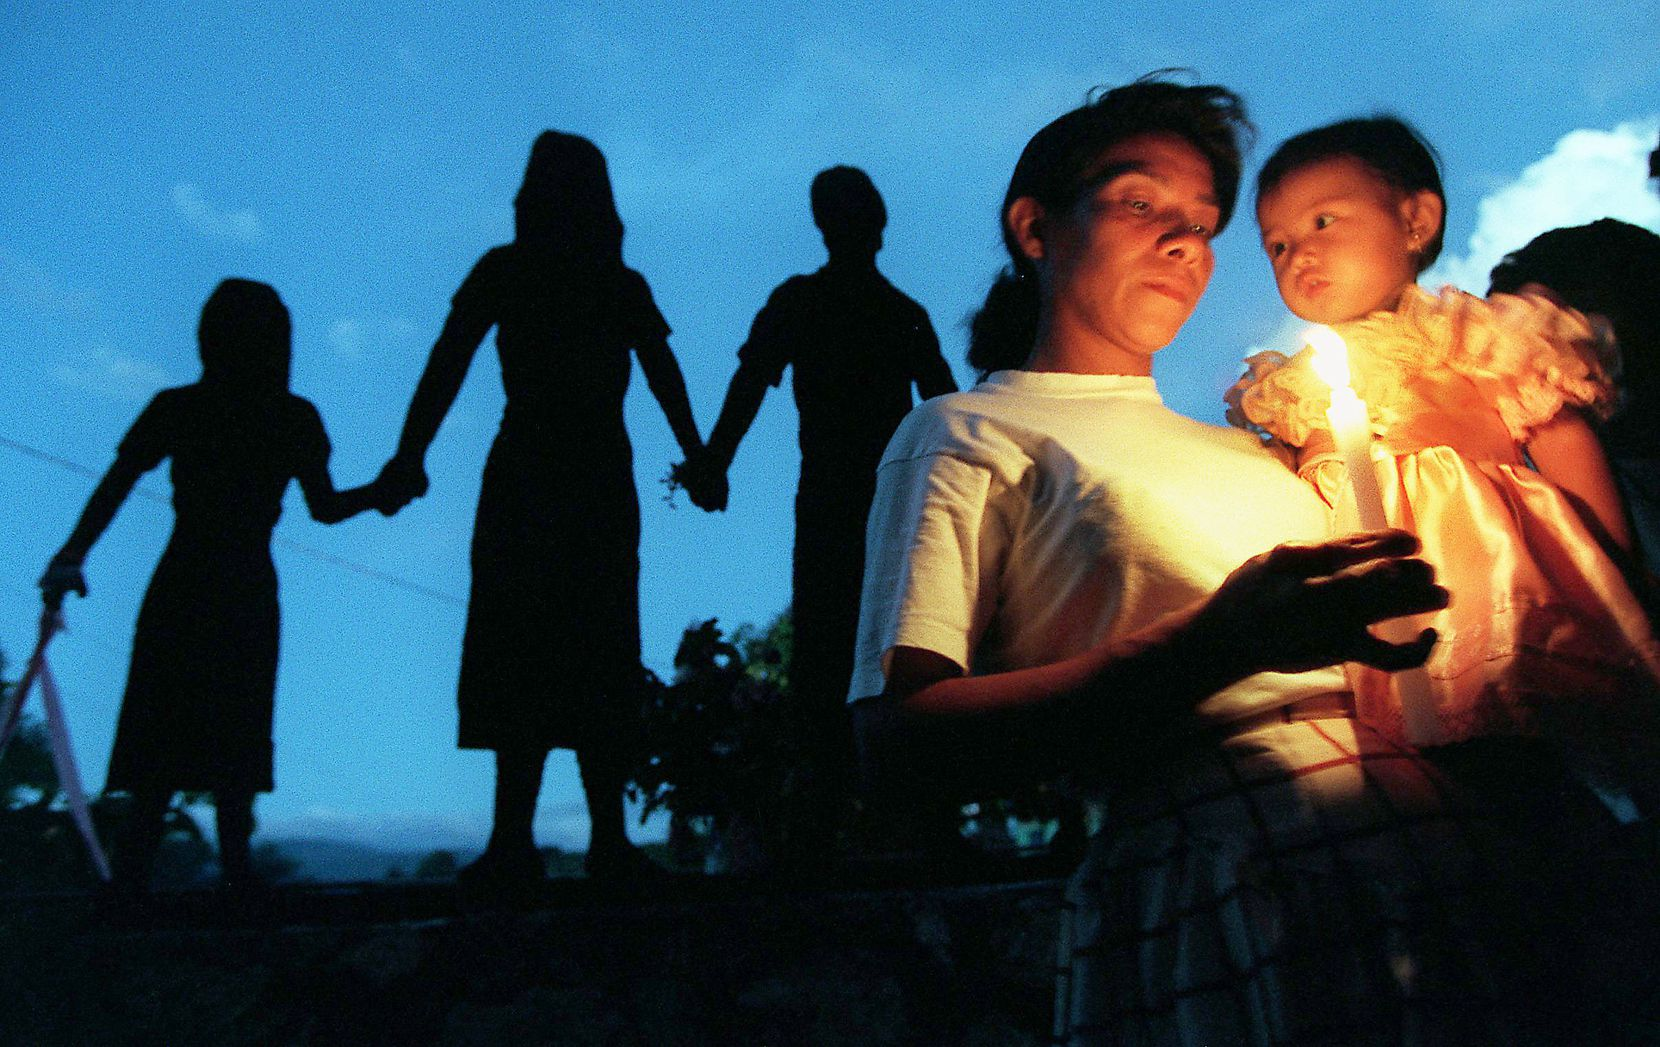 In 1997, Maria Christina Chicas held her grandaughter, Mirllama Clara Luz, 1, during a candlelight vigil on All  Soul's Day at El Mozote, El Salvador, site of a massacre of an entire village by Salvadoran Army soldiers in 1981 during the  guerilla war. She lost three sisters and a borther and nine of their children in the massacre. The silhouettes are part of a monument at the massacre site.